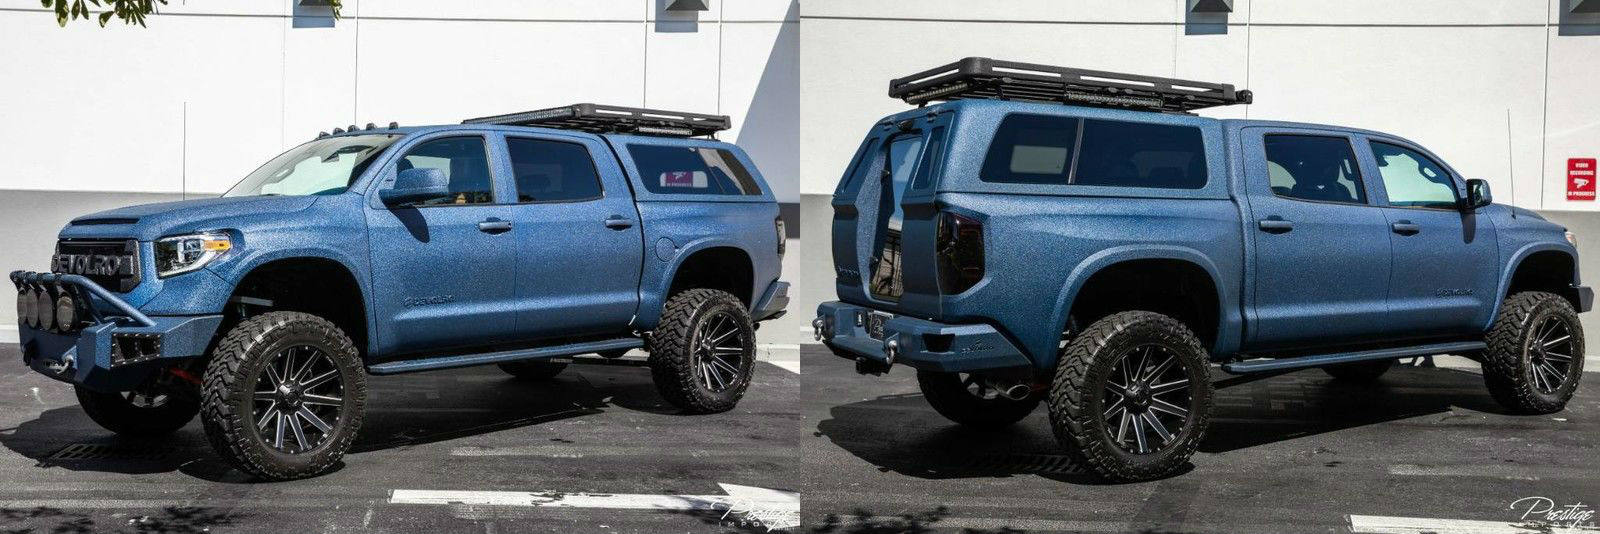 2019 Toyota Tundra Devolro Limited For Sale North Miami Beach FL